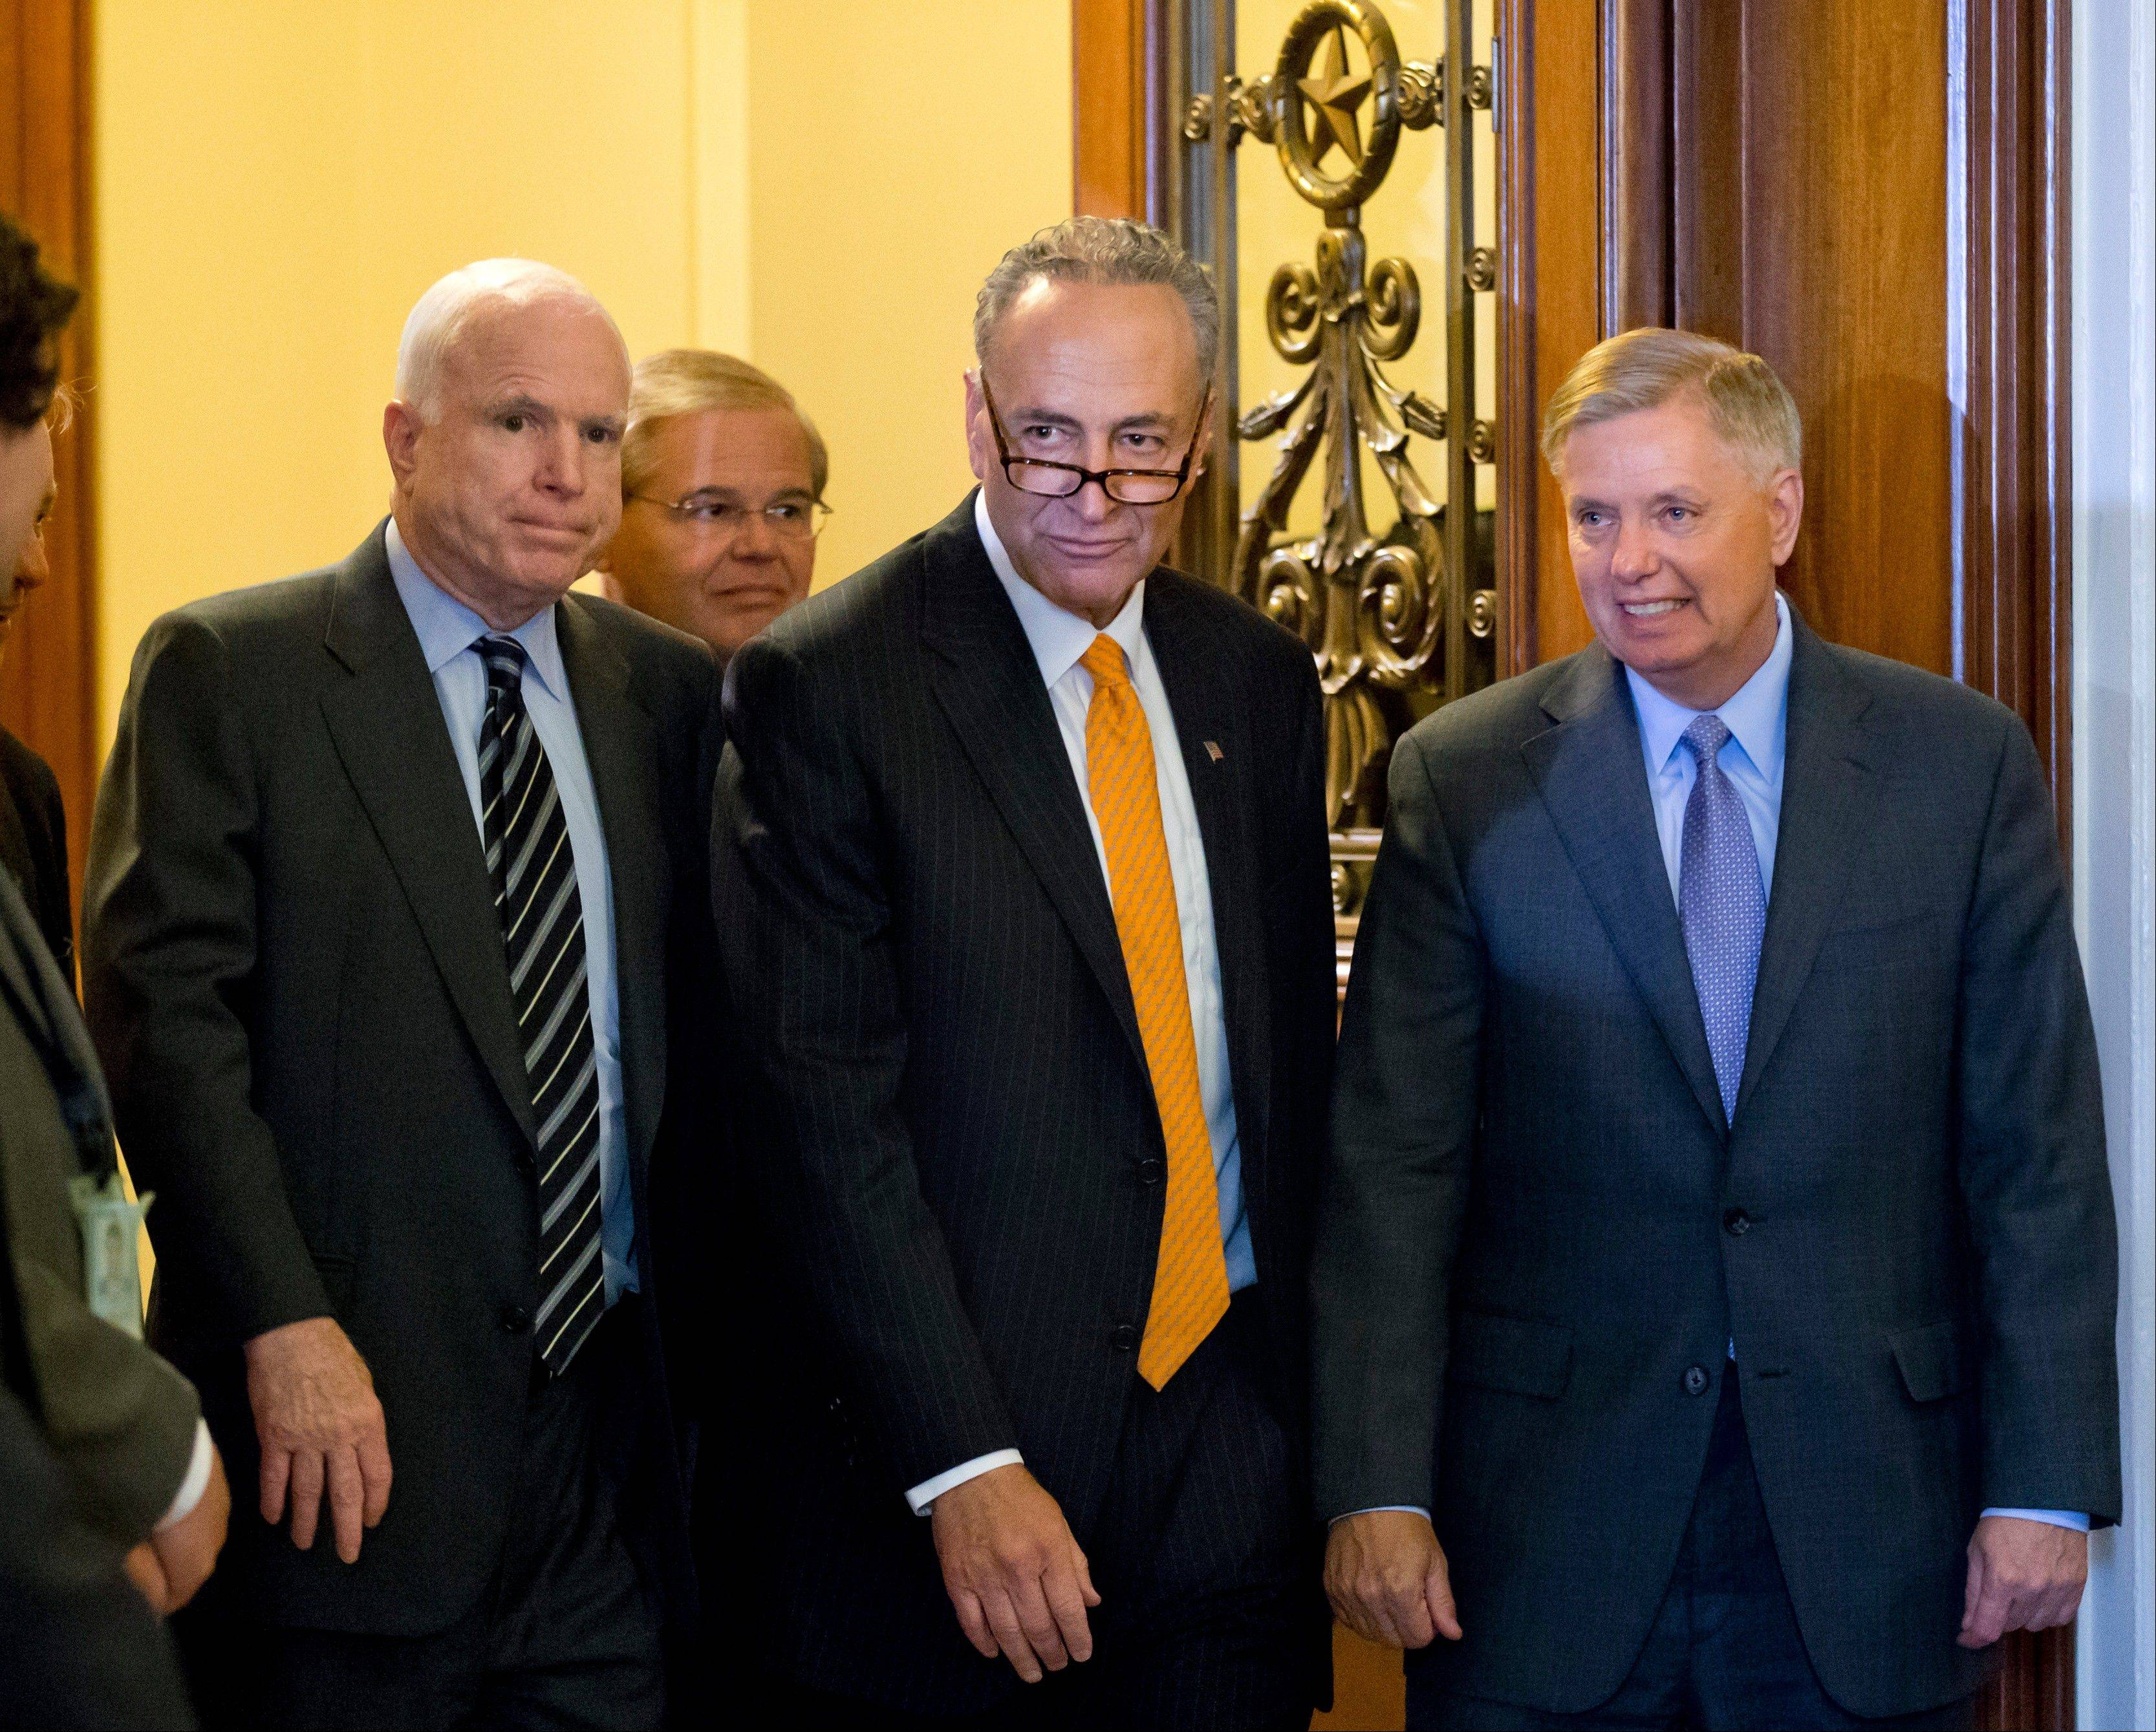 Members of the bipartisan �Gang of Eight� who crafted the immigration reform bill, Sen. Chuck Schumer, D-N.Y., center, flanked by Sen. John McCain, R-Ariz., left, and Sen. Lindsey Graham, R-S.C., leave the floor after final passage in the Senate, at the Capitol in Washington, Thursday, June 27, 2013. Sen. Robert Menendez, D-N.J., follows at rear. In remarks to reporters, Sen. Lindsey Graham, a conservative Republican, praised the leadership of Democrat Chuck Schumer, saying �Senator Schumer�s a worthy successor to Ted Kennedy.�